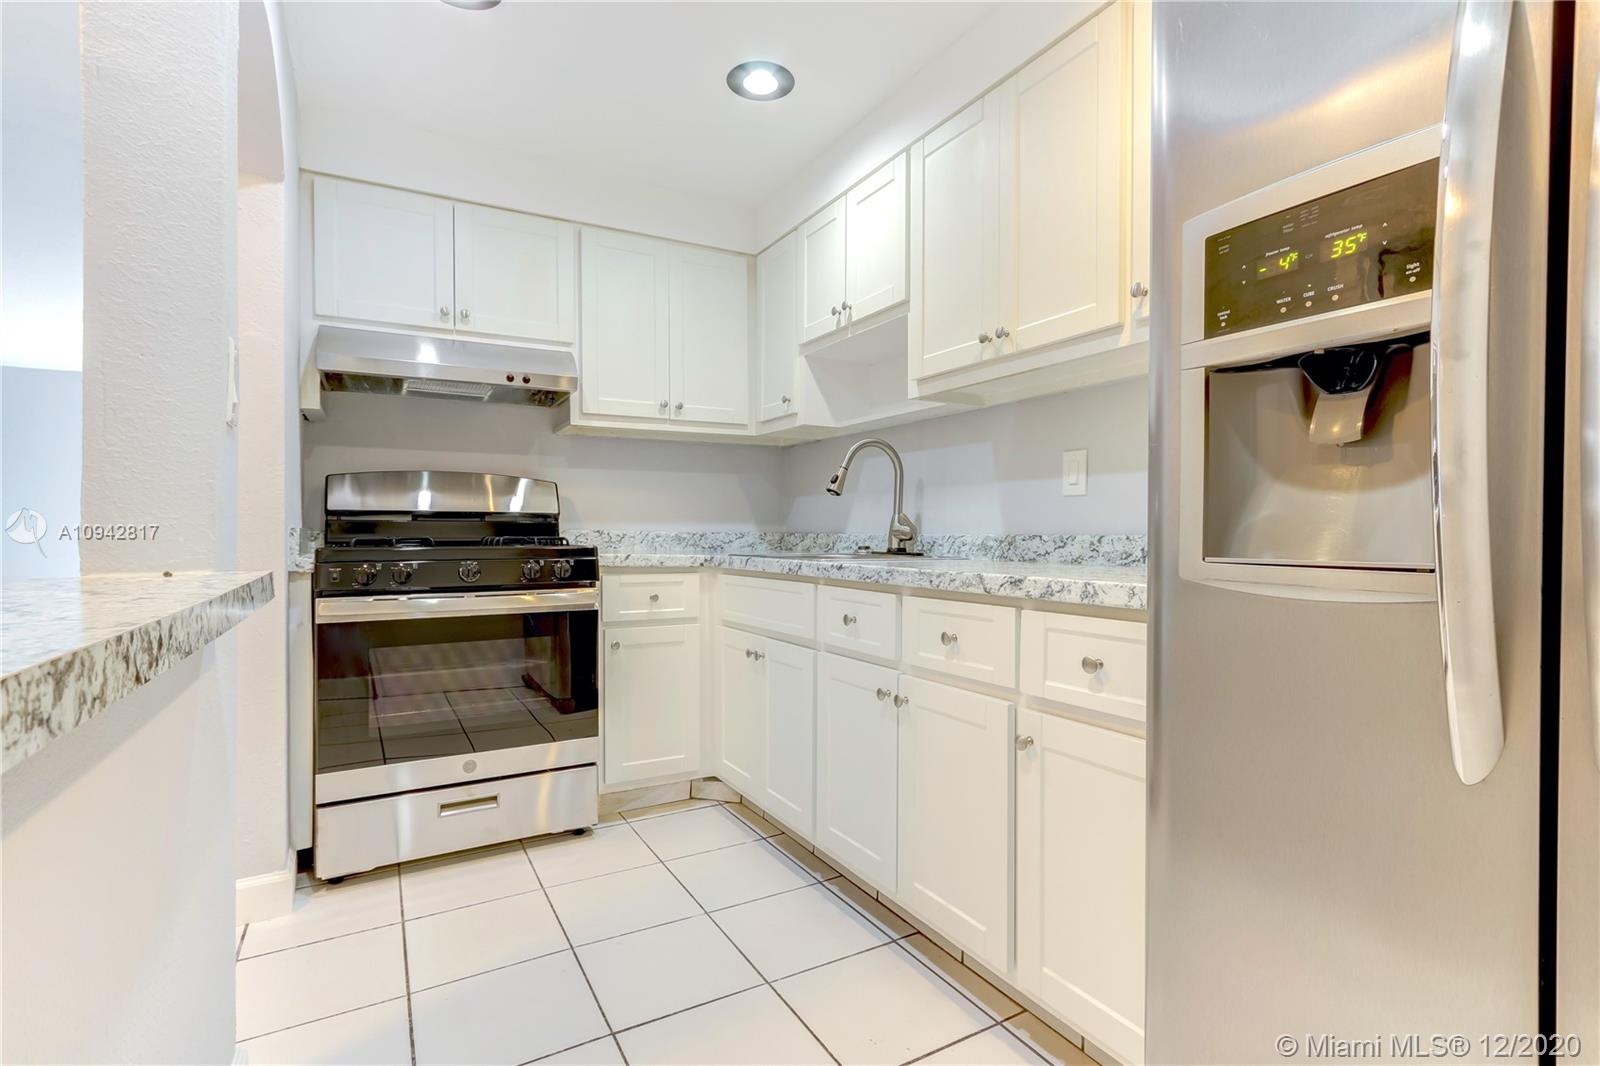 8650 SW 67th Ave # 1041, Pinecrest, Florida 33156, 2 Bedrooms Bedrooms, ,3 BathroomsBathrooms,Residential,For Sale,8650 SW 67th Ave # 1041,A10942817